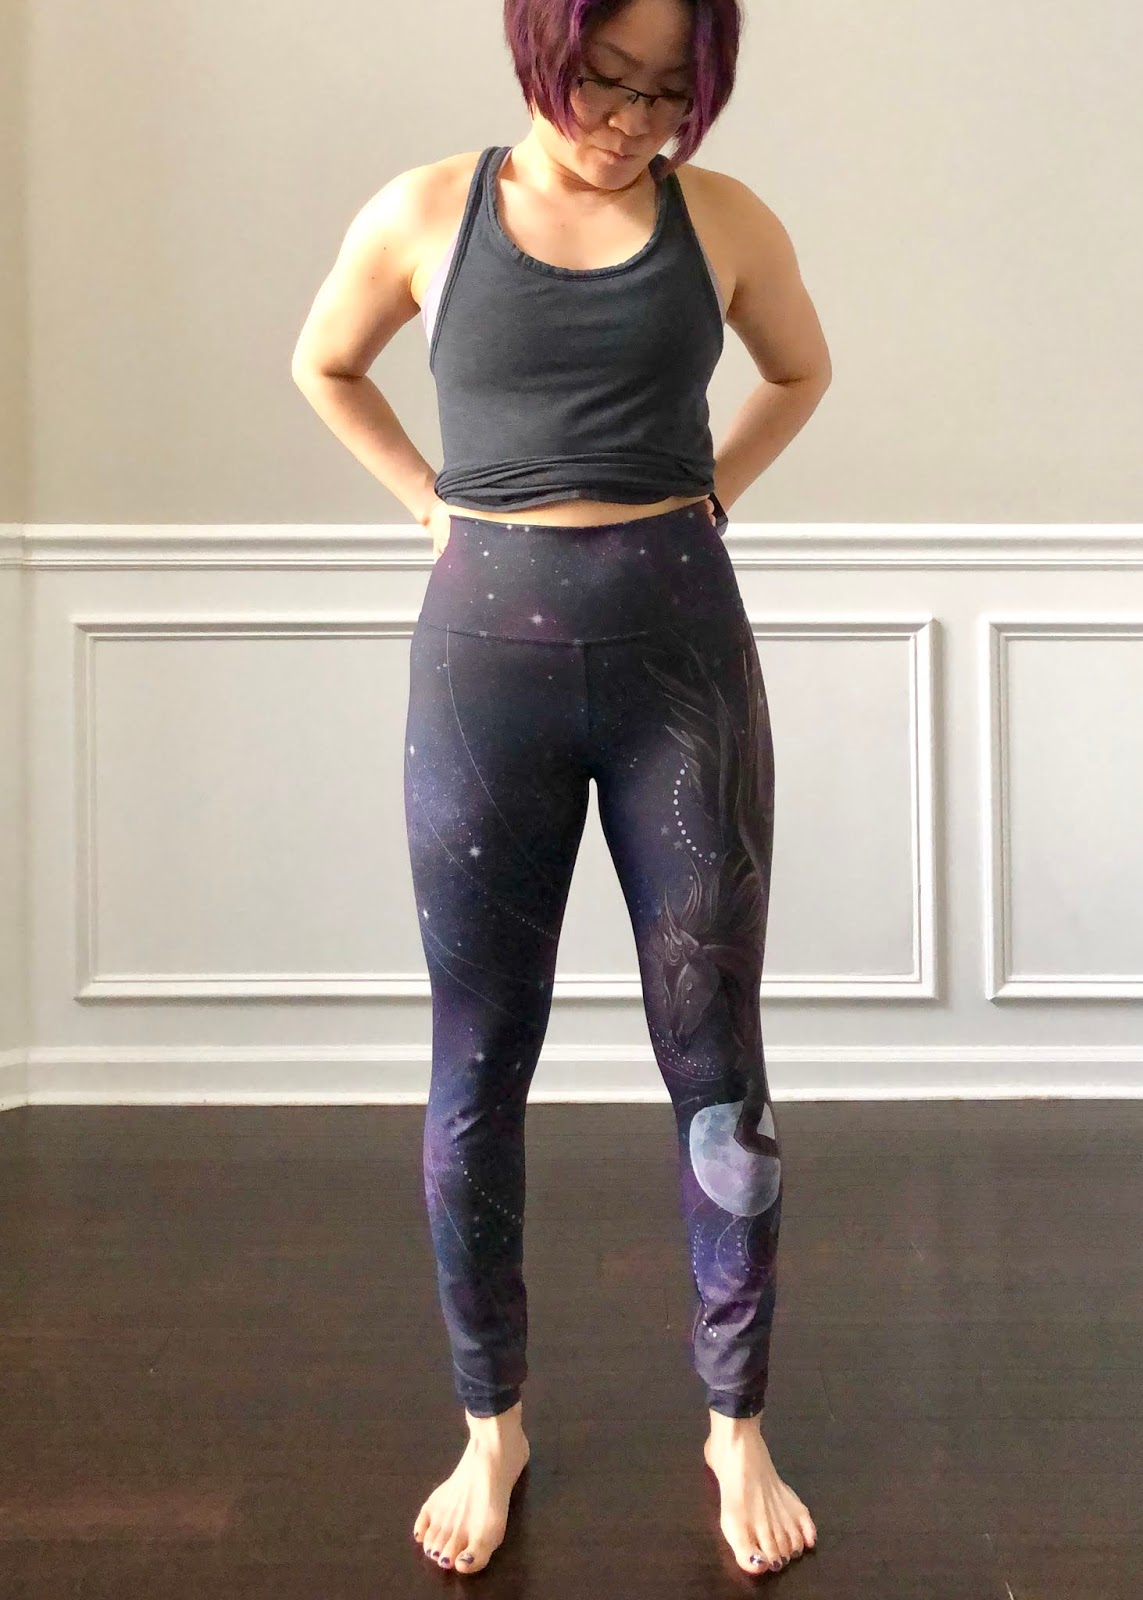 e3874c70a951e These leggings feel like butter. Super smooth and soft but without the  pilling. They remind me of Align bottoms to be honest in terms of fit.